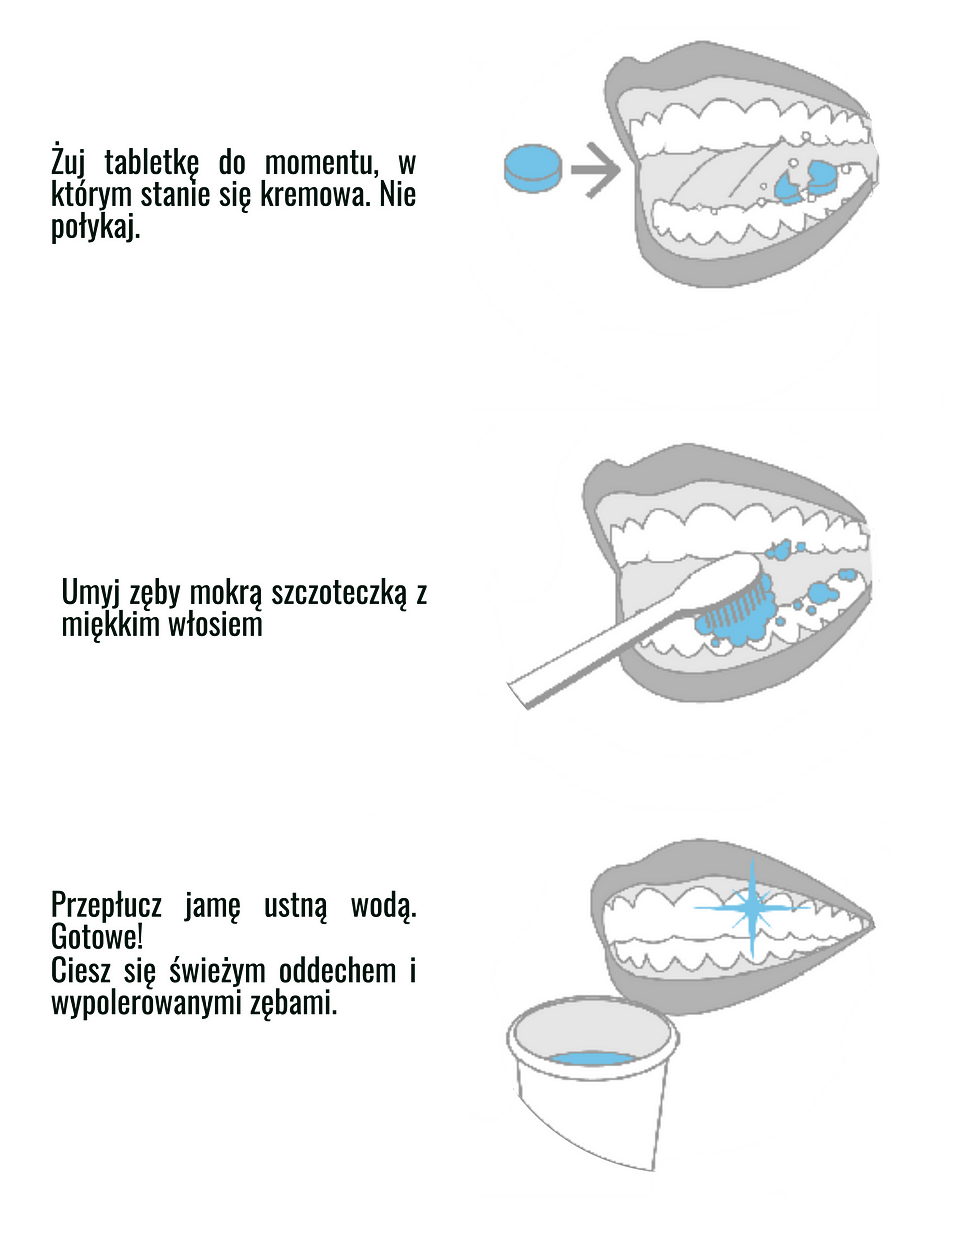 Picture shows how to properly brush teeth.